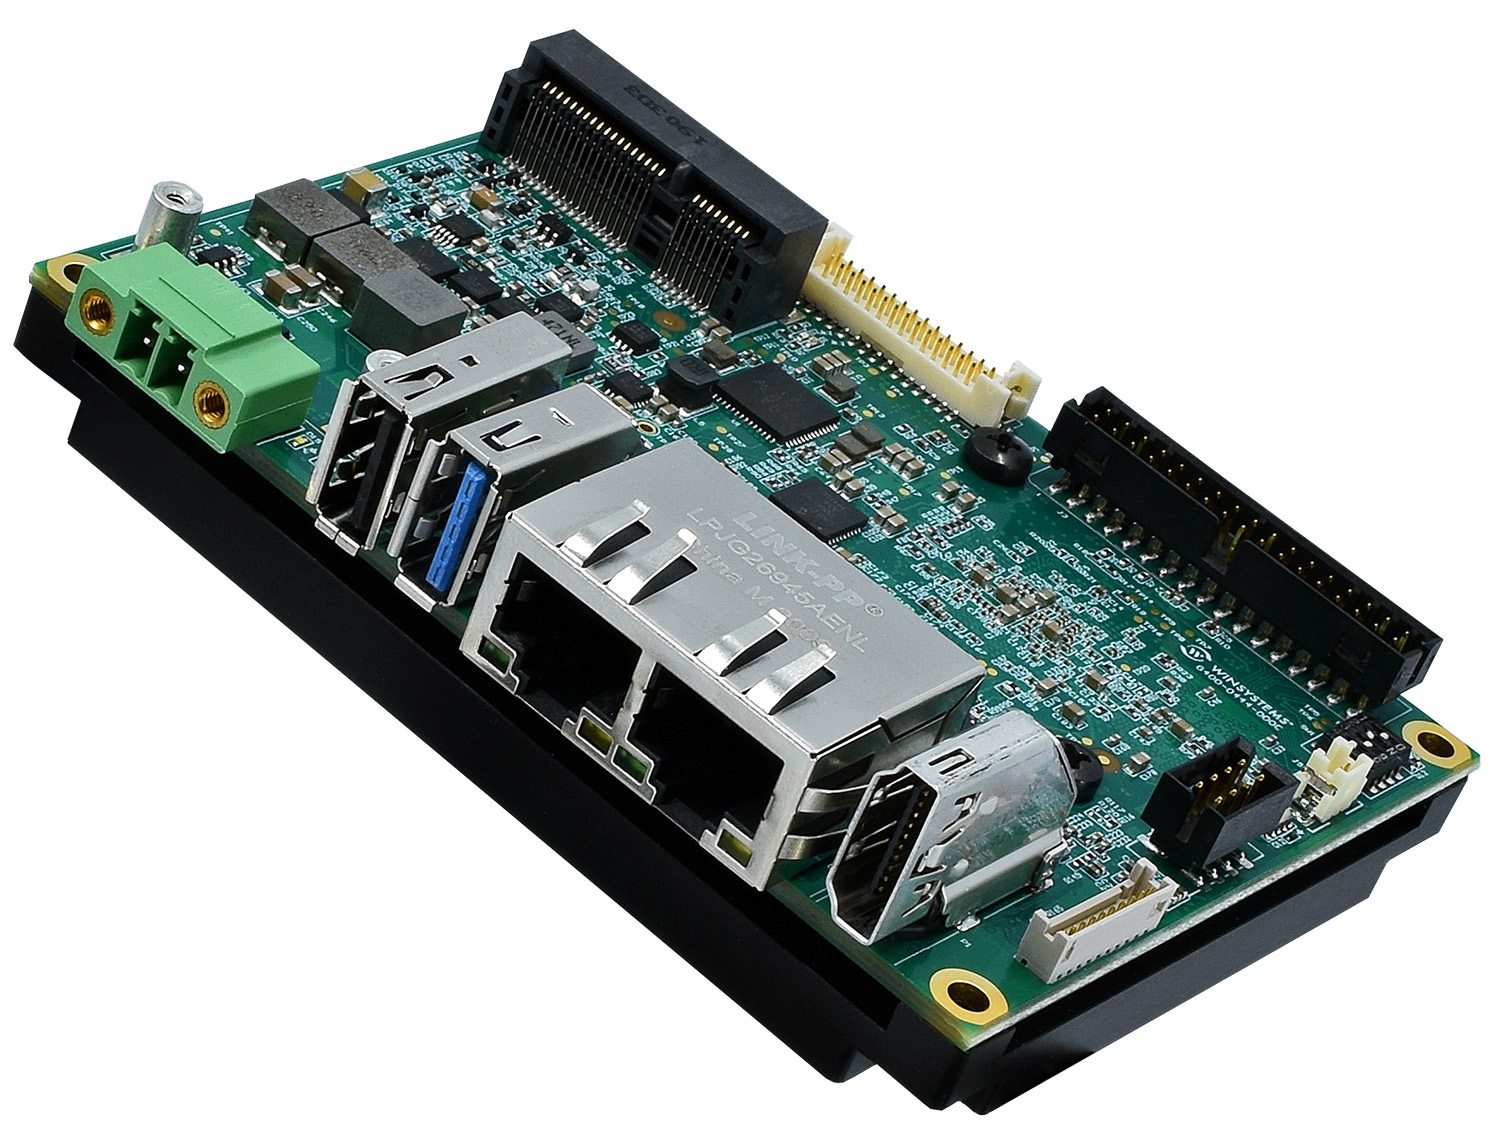 WINSYSTEMS_ITX-P-C444_with_NXP-I.MX8M-processor_TMP-2.0-hardware-security